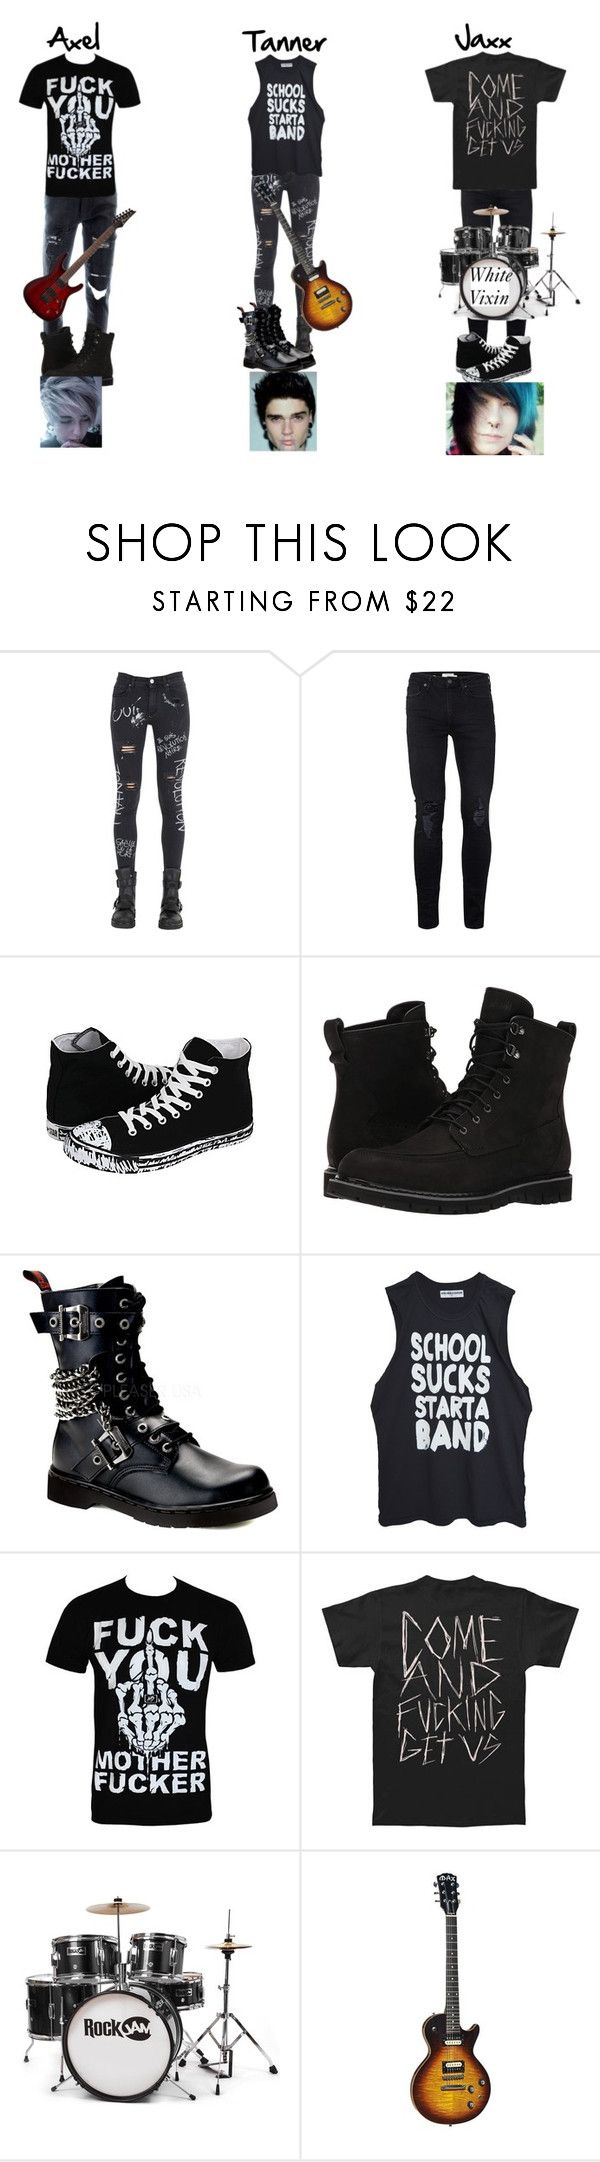 """""""PRP~"""" by beautifully-broken-allie ❤ liked on Polyvore featuring GaÃ«lle Bonheur, Topman, Converse, Timberland, Demonia, High Heels Suicide, men's fashion and menswear"""